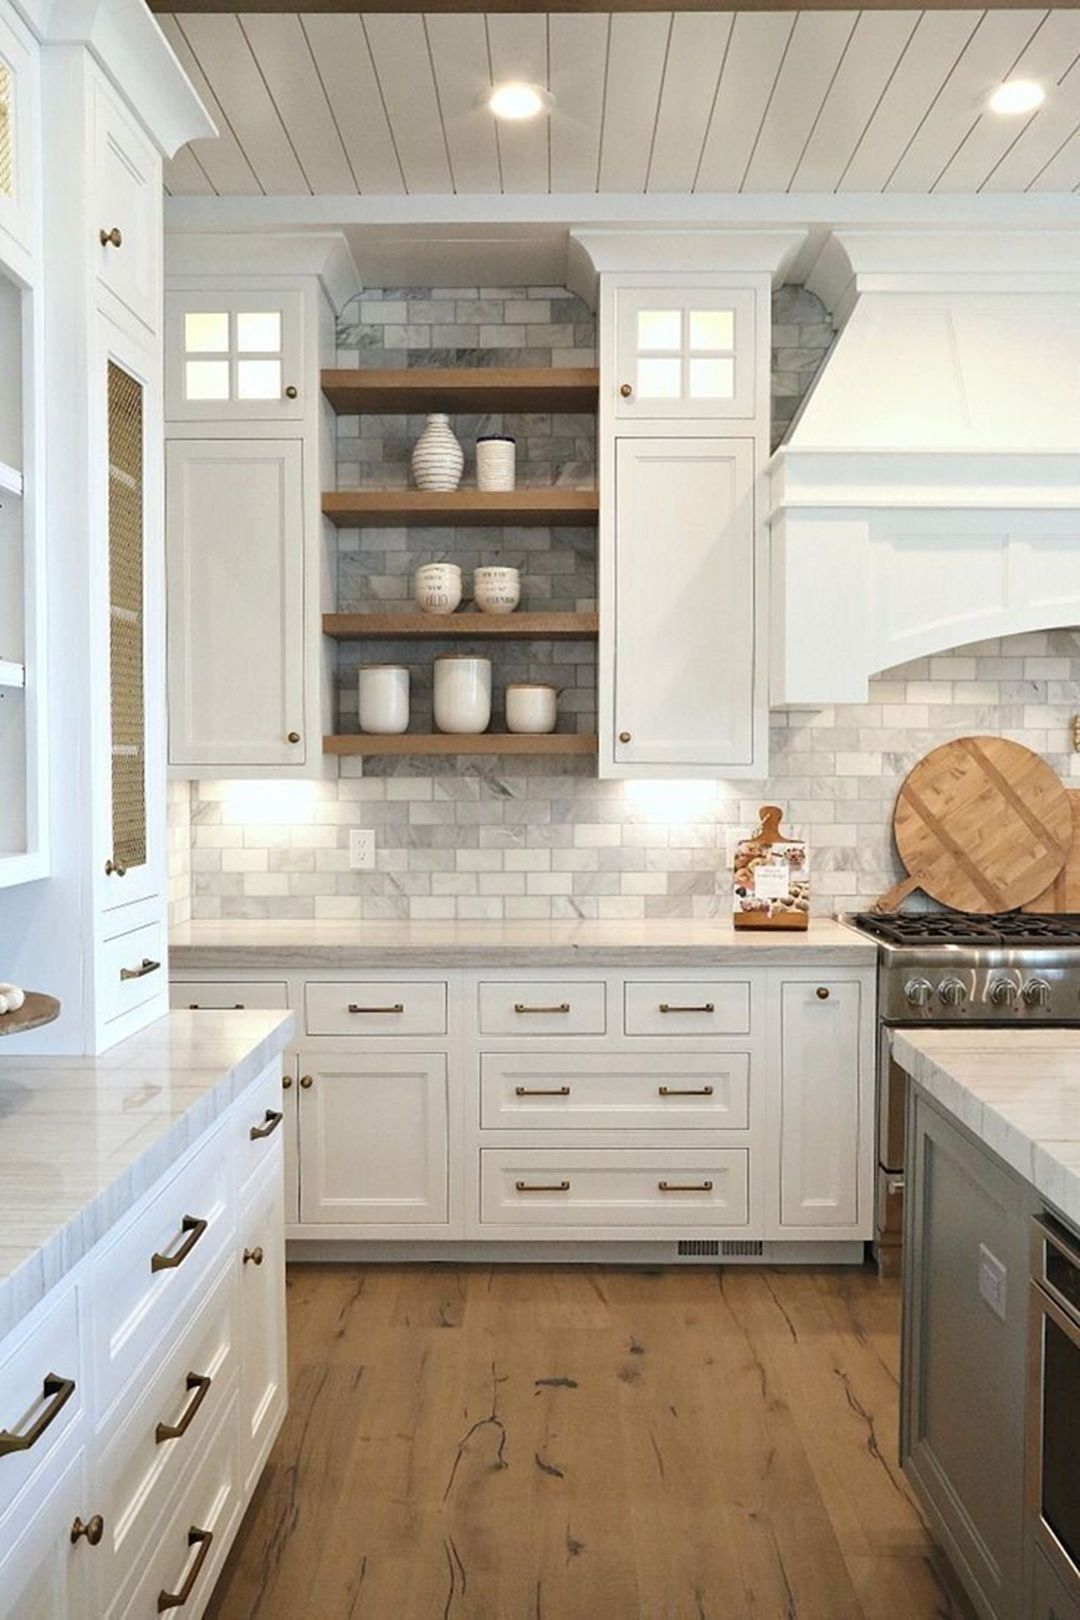 Wonderful Kitchen Design Ideas That Are Actually Useful33